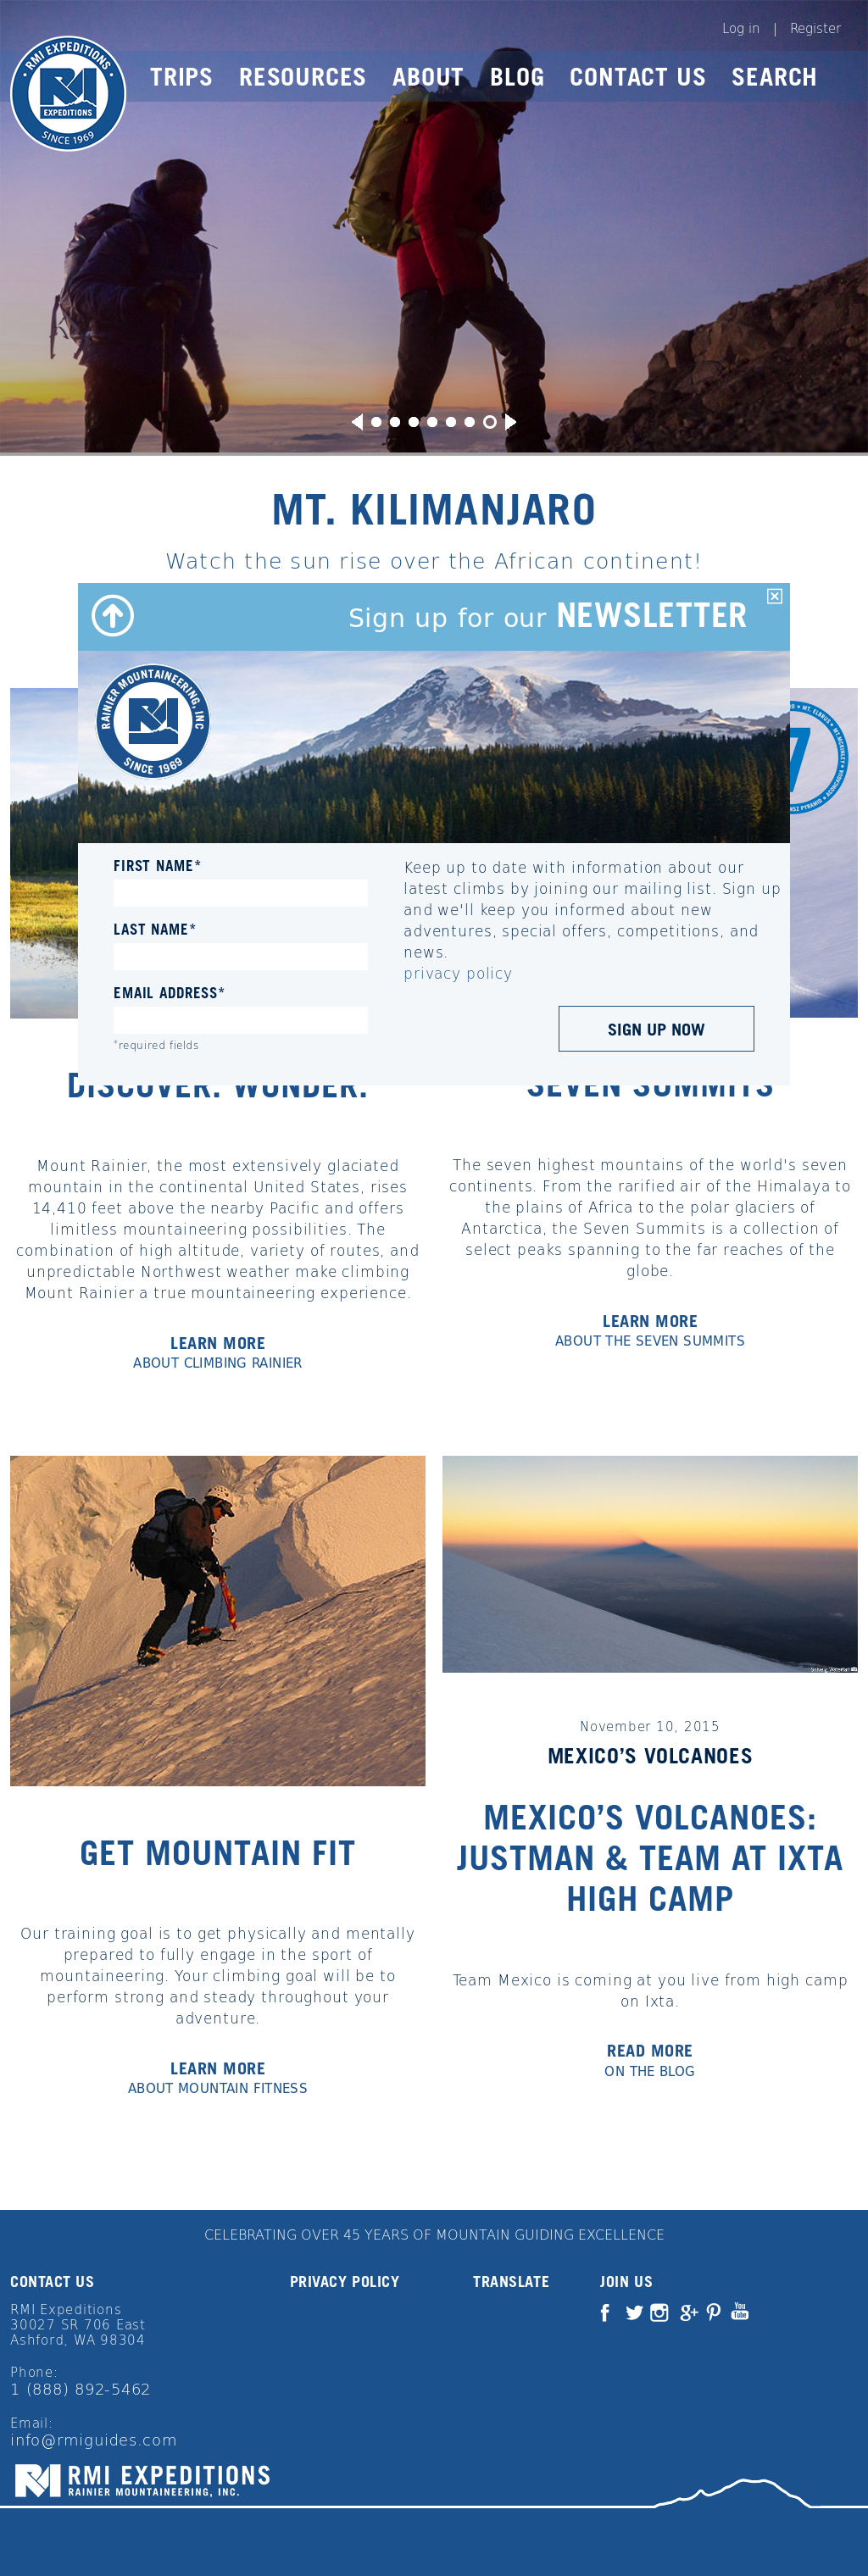 Rmiguides Competitors, Revenue and Employees - Owler Company Profile